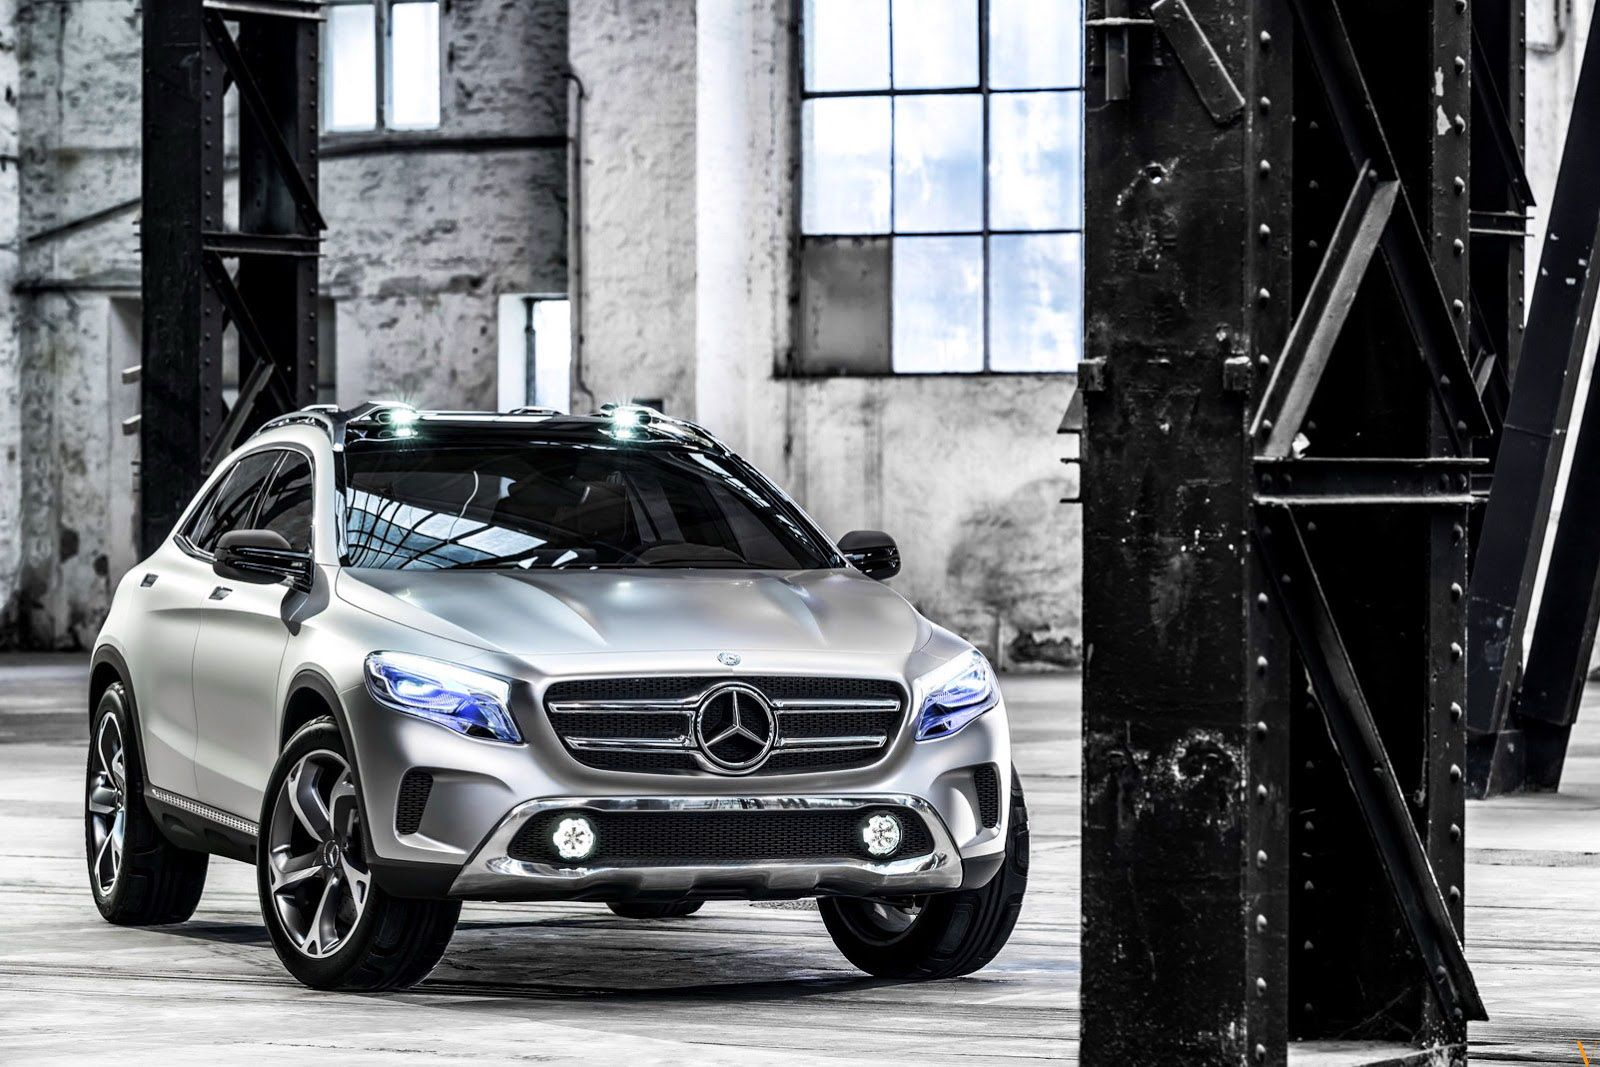 Beautiful Mercedes Benz Gla Compact Luxury Suv 2 0l 4 Cylinder Engine With 7 Speed Dual Clutch Transmission Produc Mercedes Benz Gla Mercedes Suv Mercedes Gla